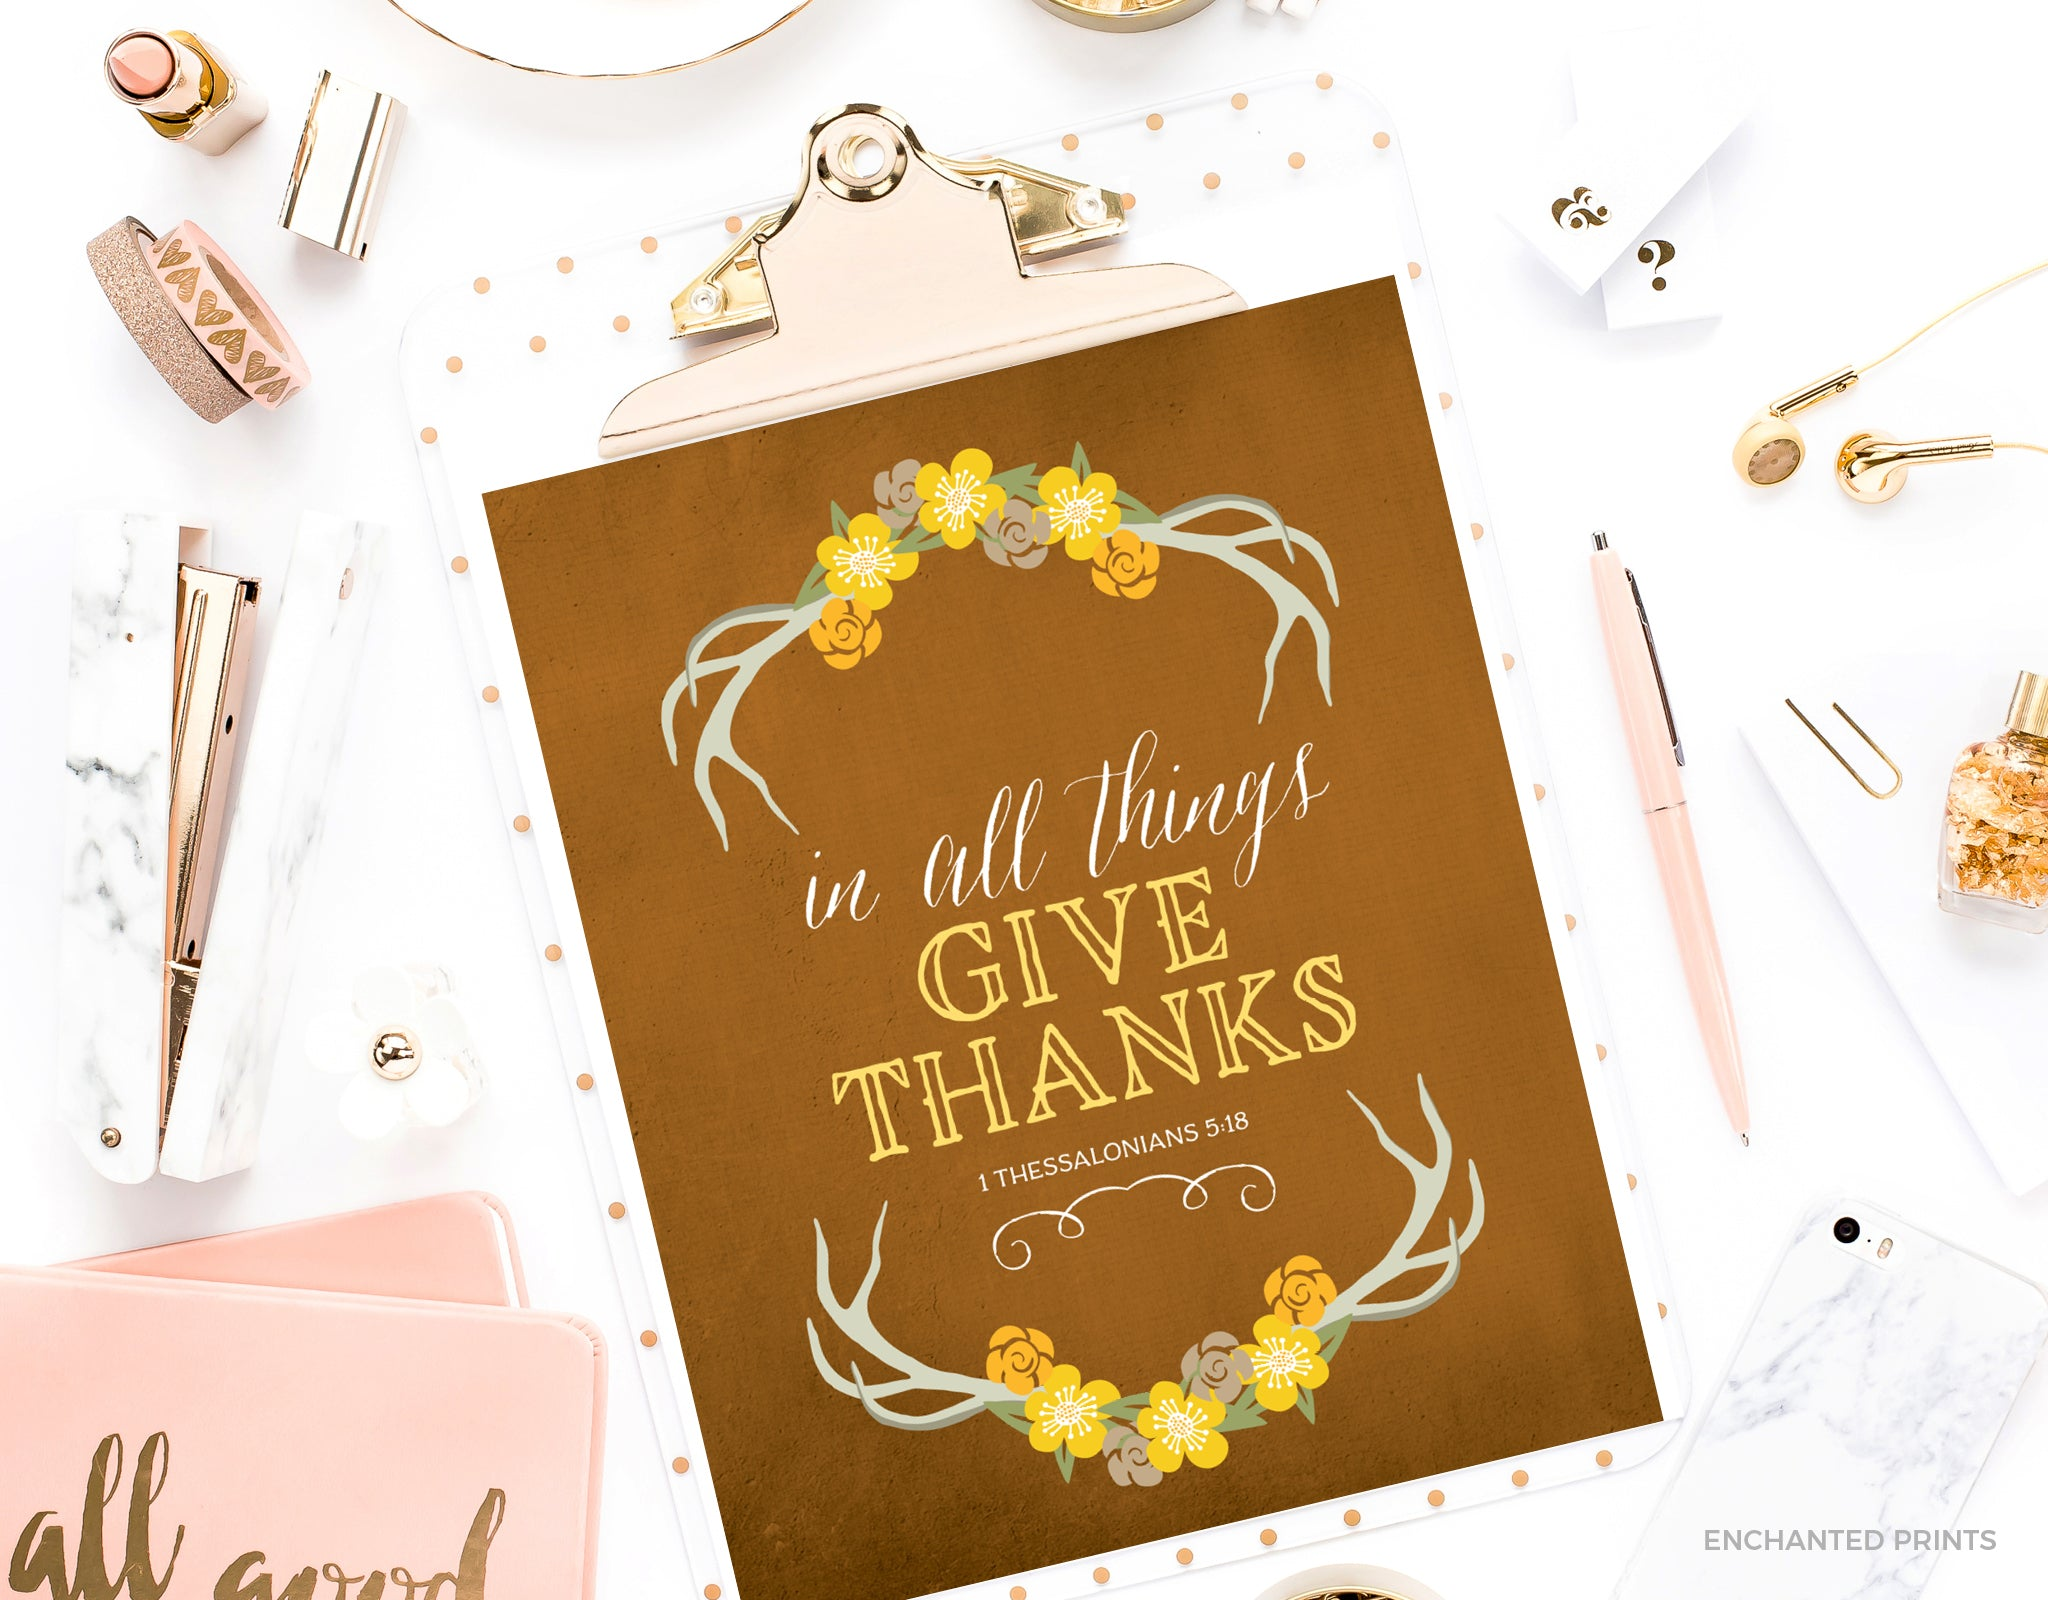 In all things give thanks, from 1 Thessalonians 5:18